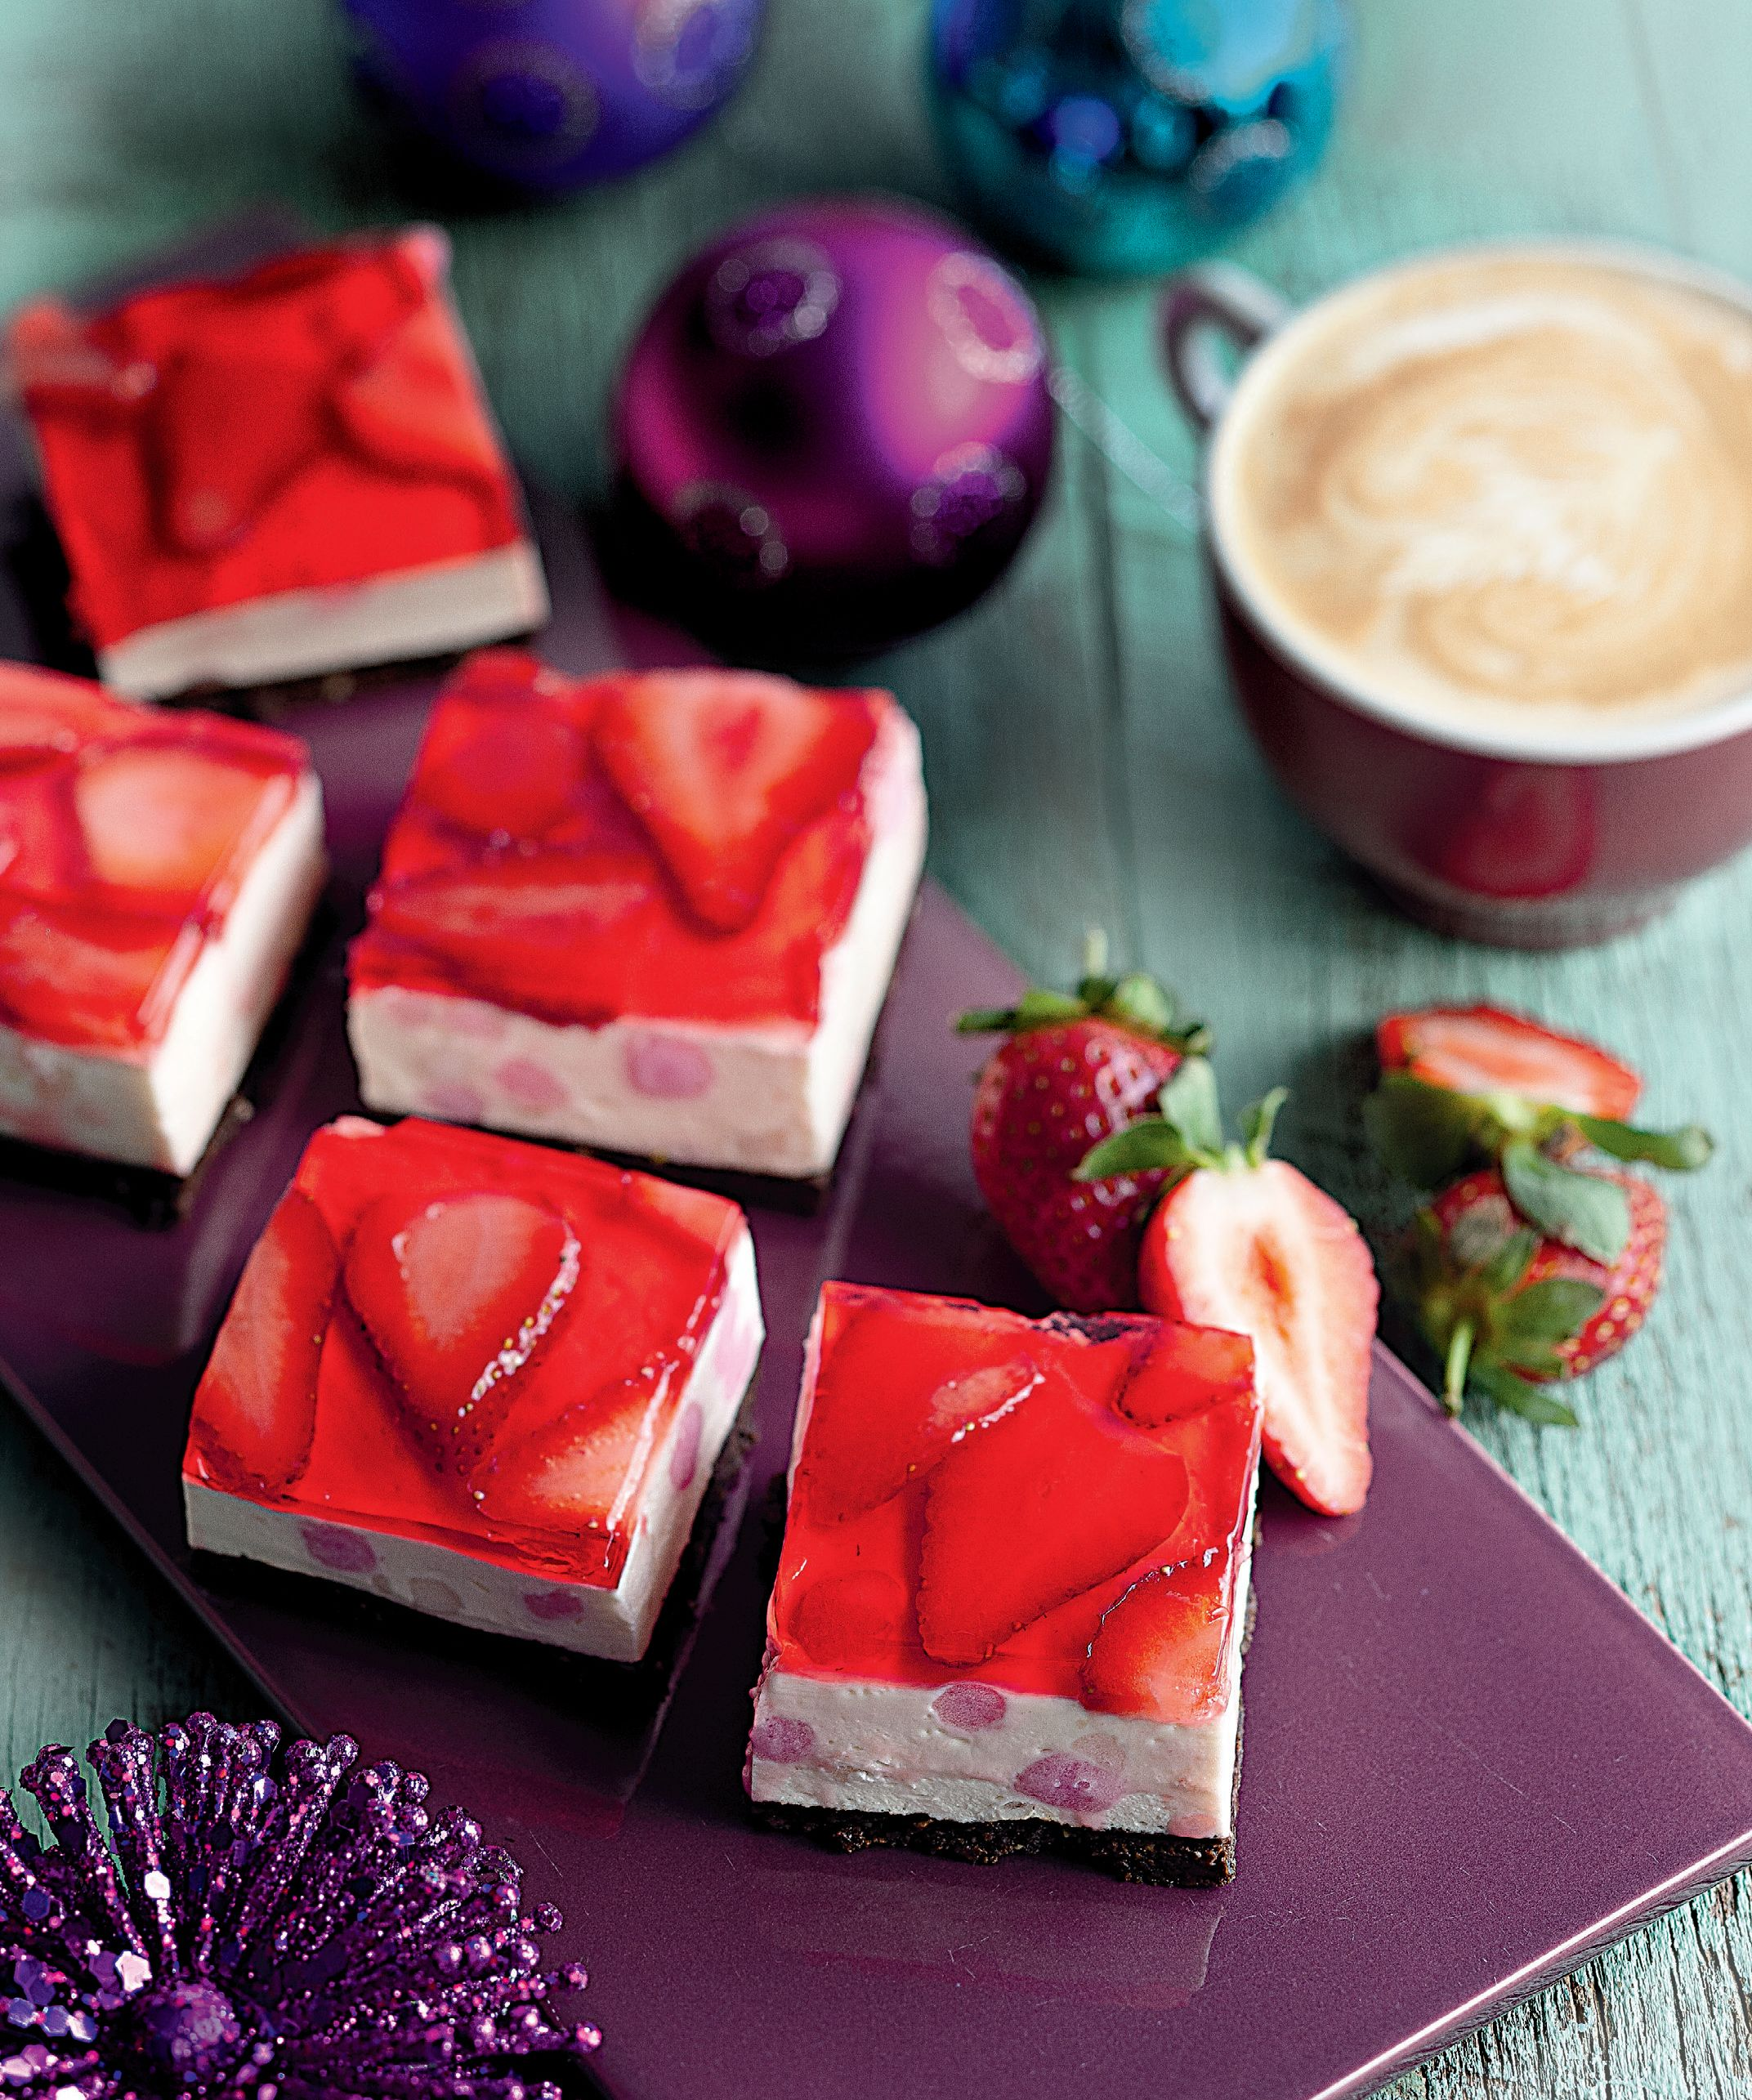 Strawberry Jelly Slice. Impress Your Friends With This